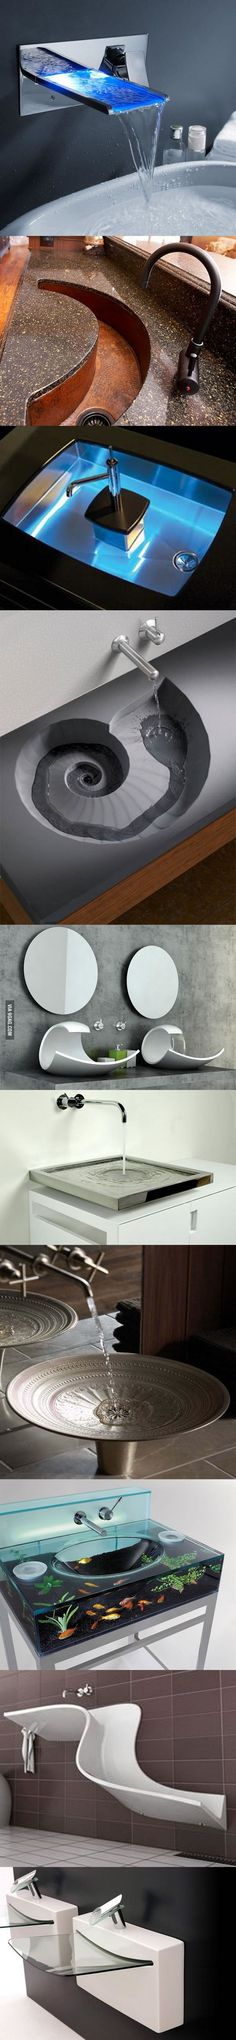 I was disappointed earlier when I didn't get to see many fancy sinks - 9GAG